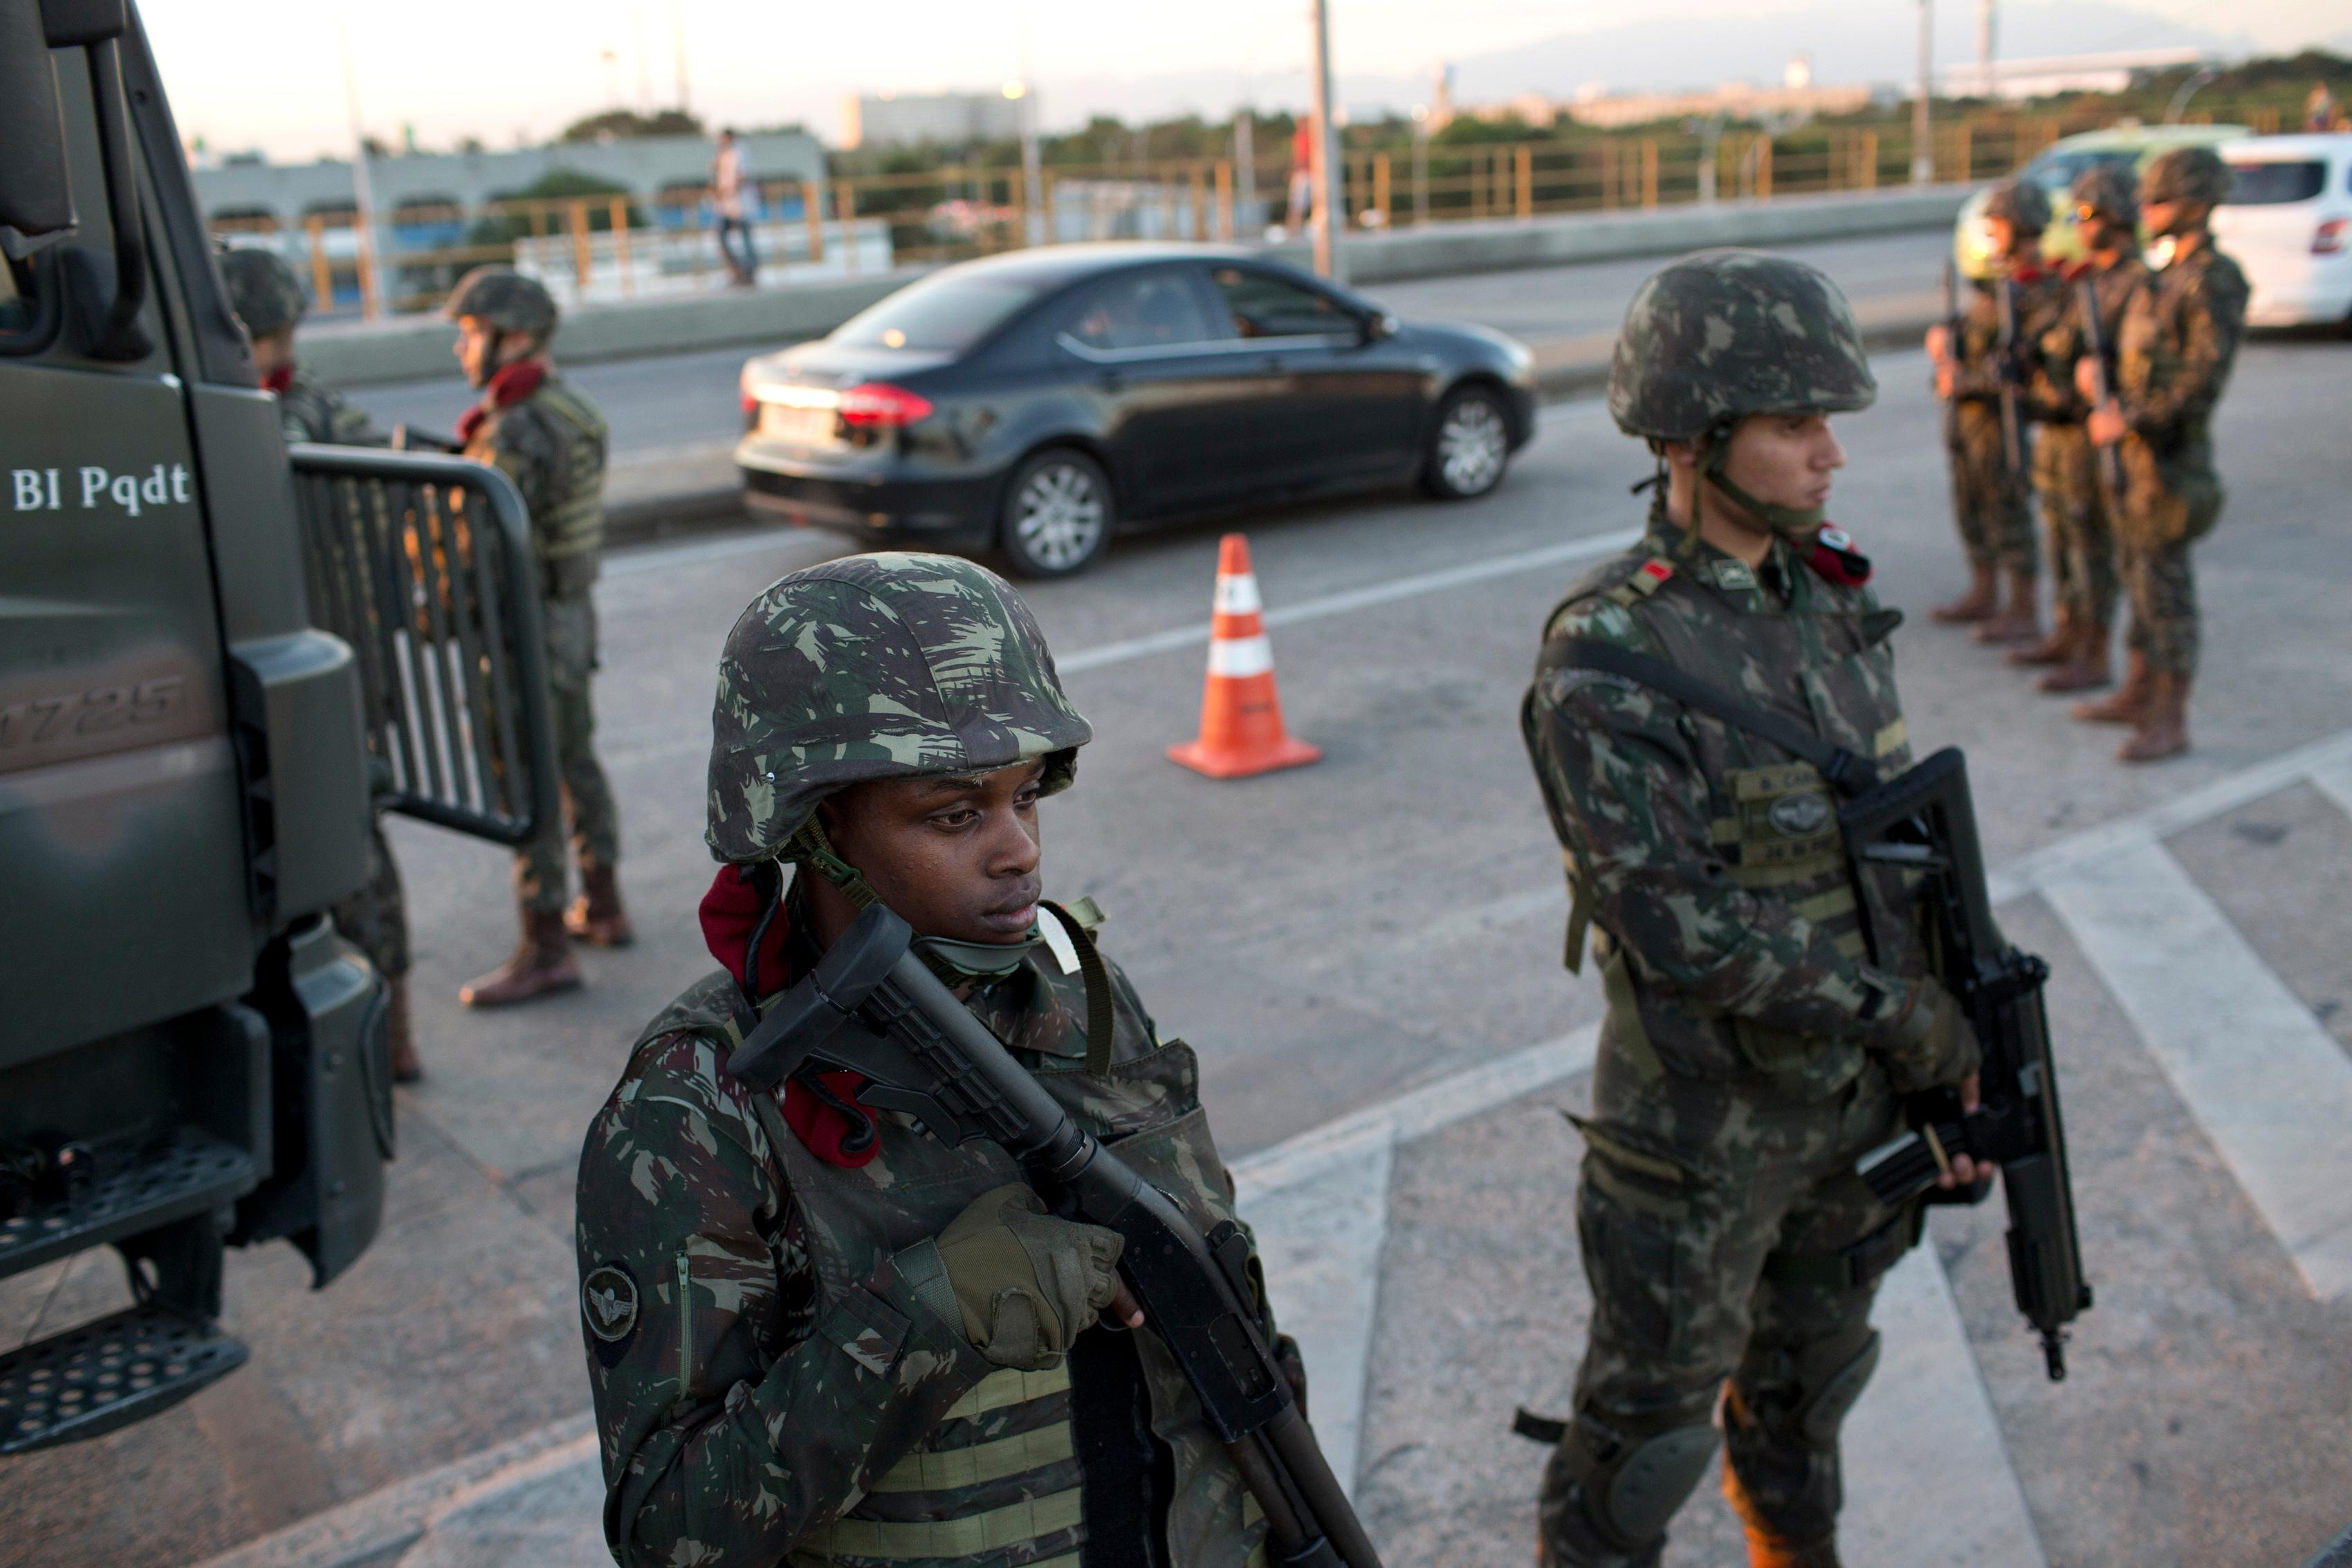 Soldiers patrol a highway near the Mare Complex slum in Rio de Janeiro, Brazil, Friday, July 28, 2017.  Thousands of Brazilian soldiers have begun patrolling in Rio de Janeiro amid a spike in violence. (AP Photo/Silvia Izquierdo)